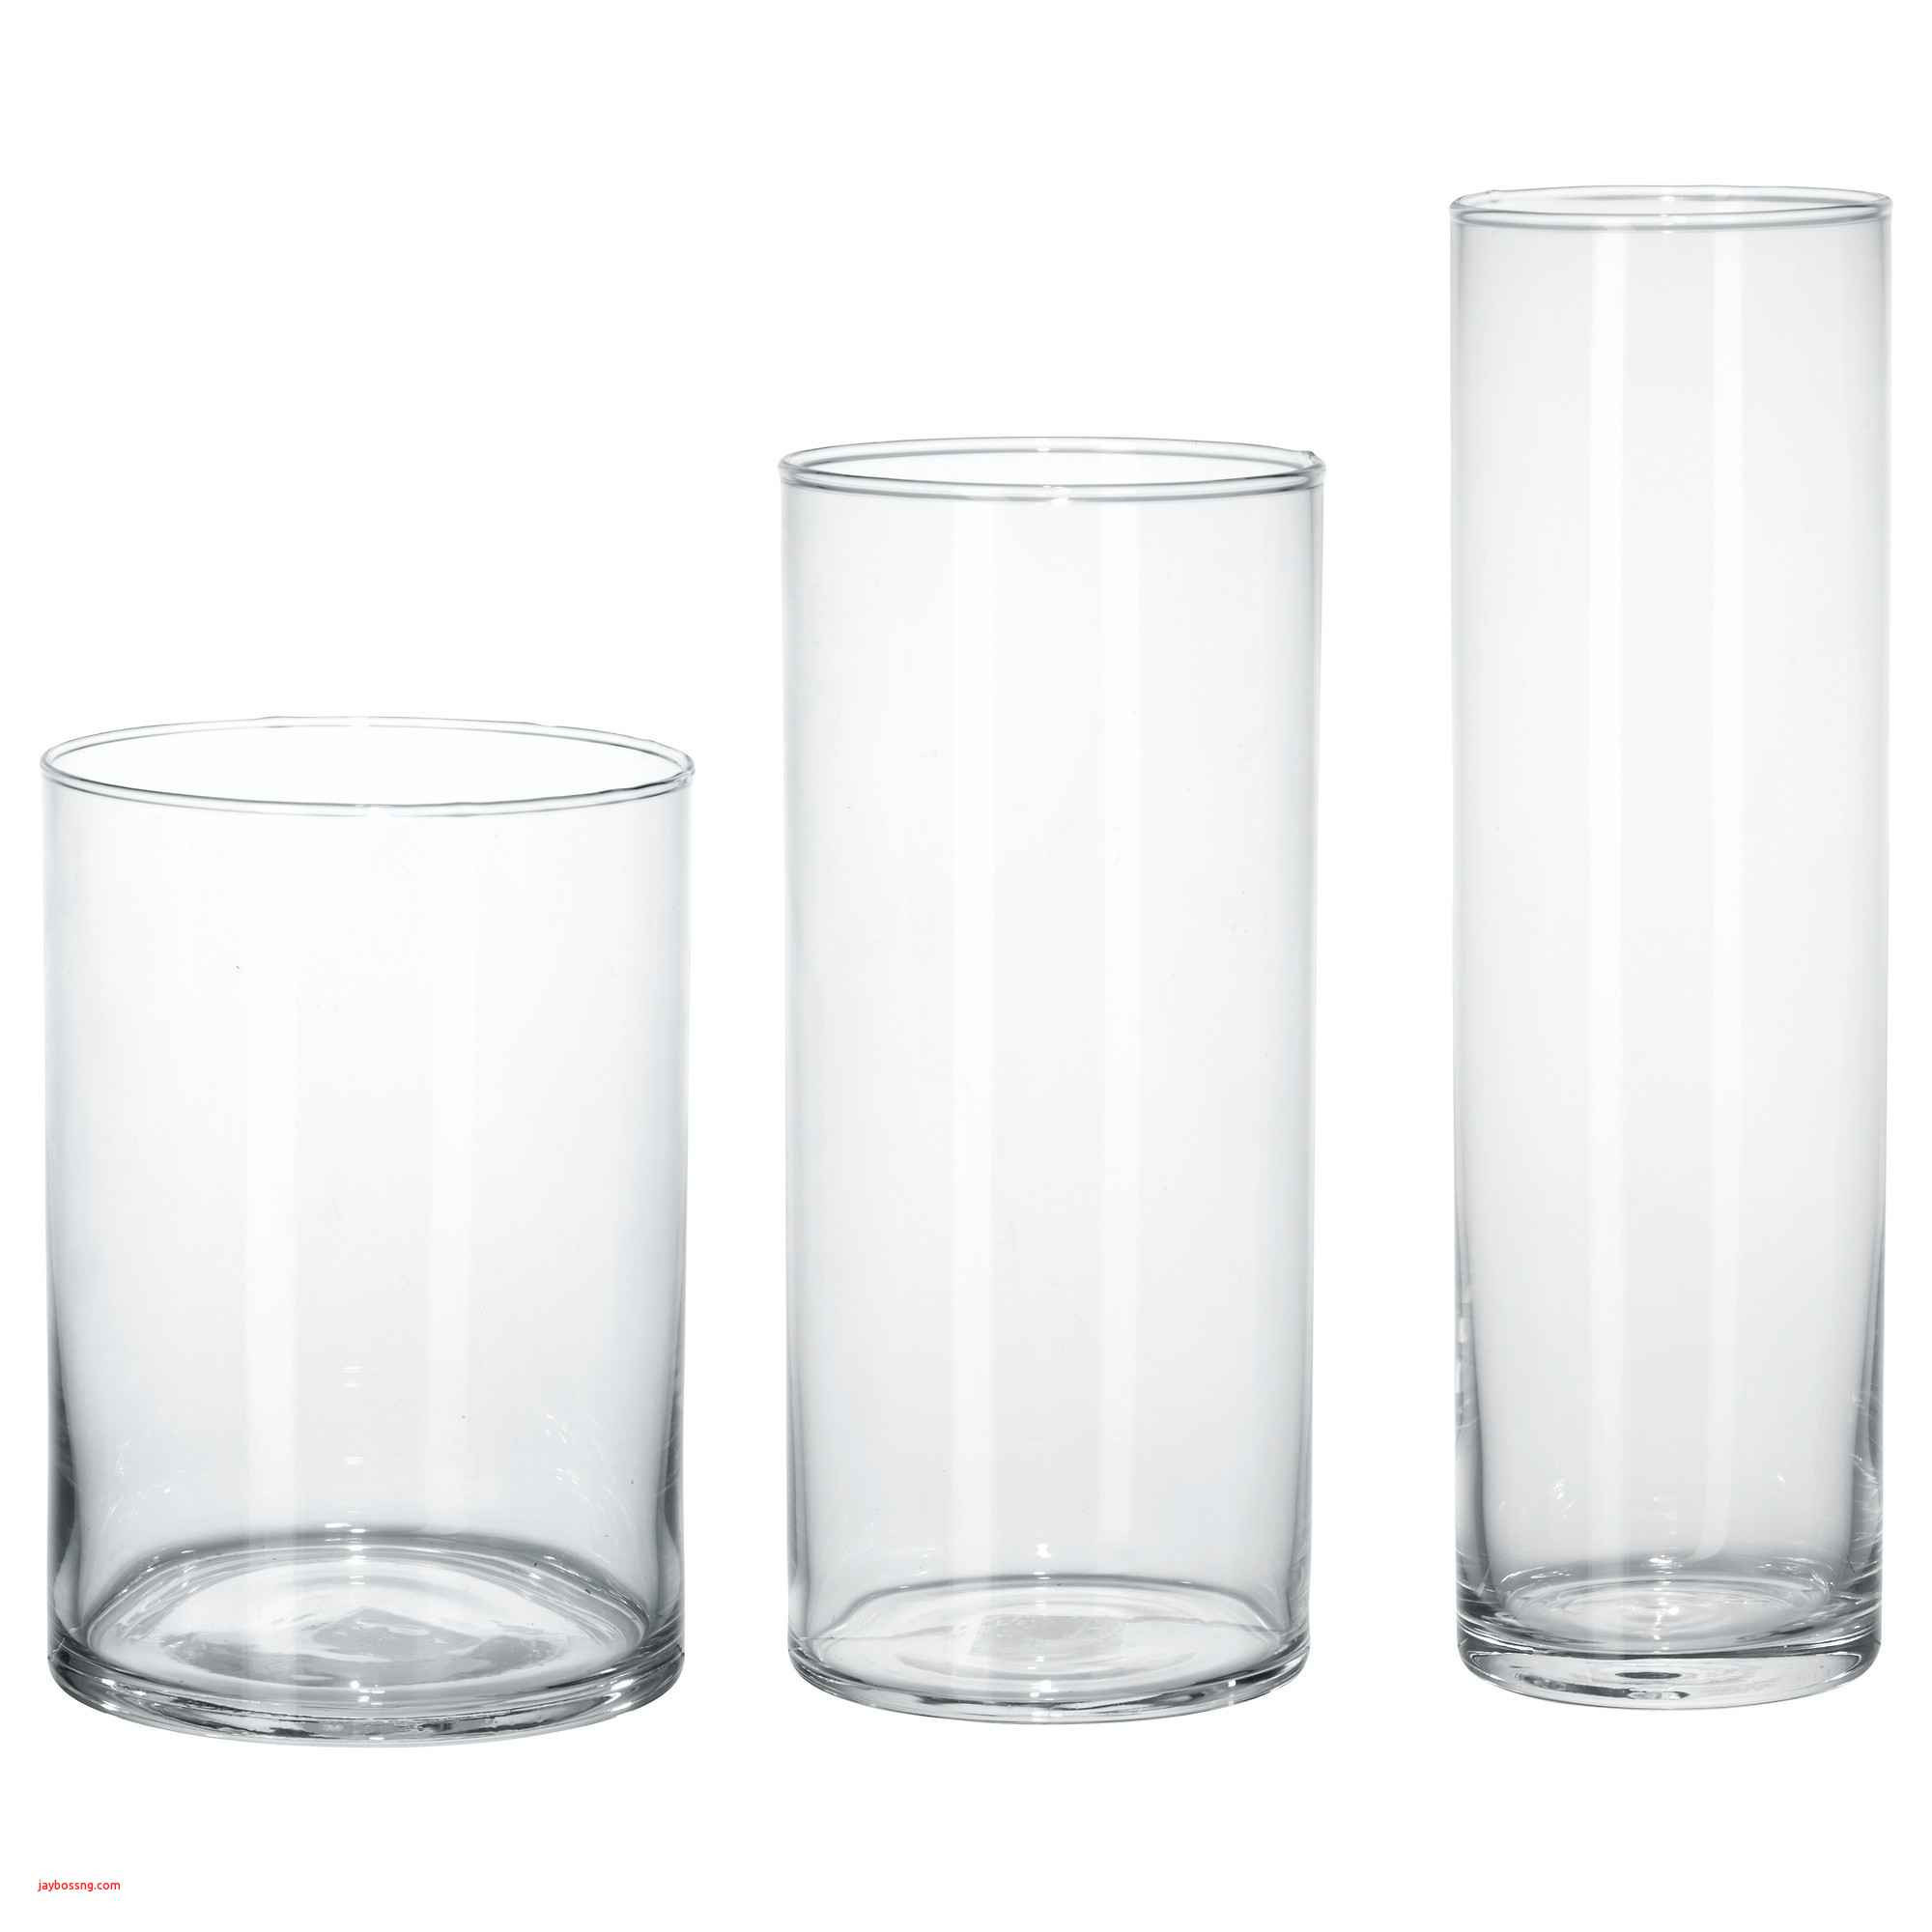 clear crystal vase fillers of black vase fillers photograph ikea white table created pe s5h vases throughout black vase fillers photograph ikea white table created pe s5h vases ikea vase i 0d bladet